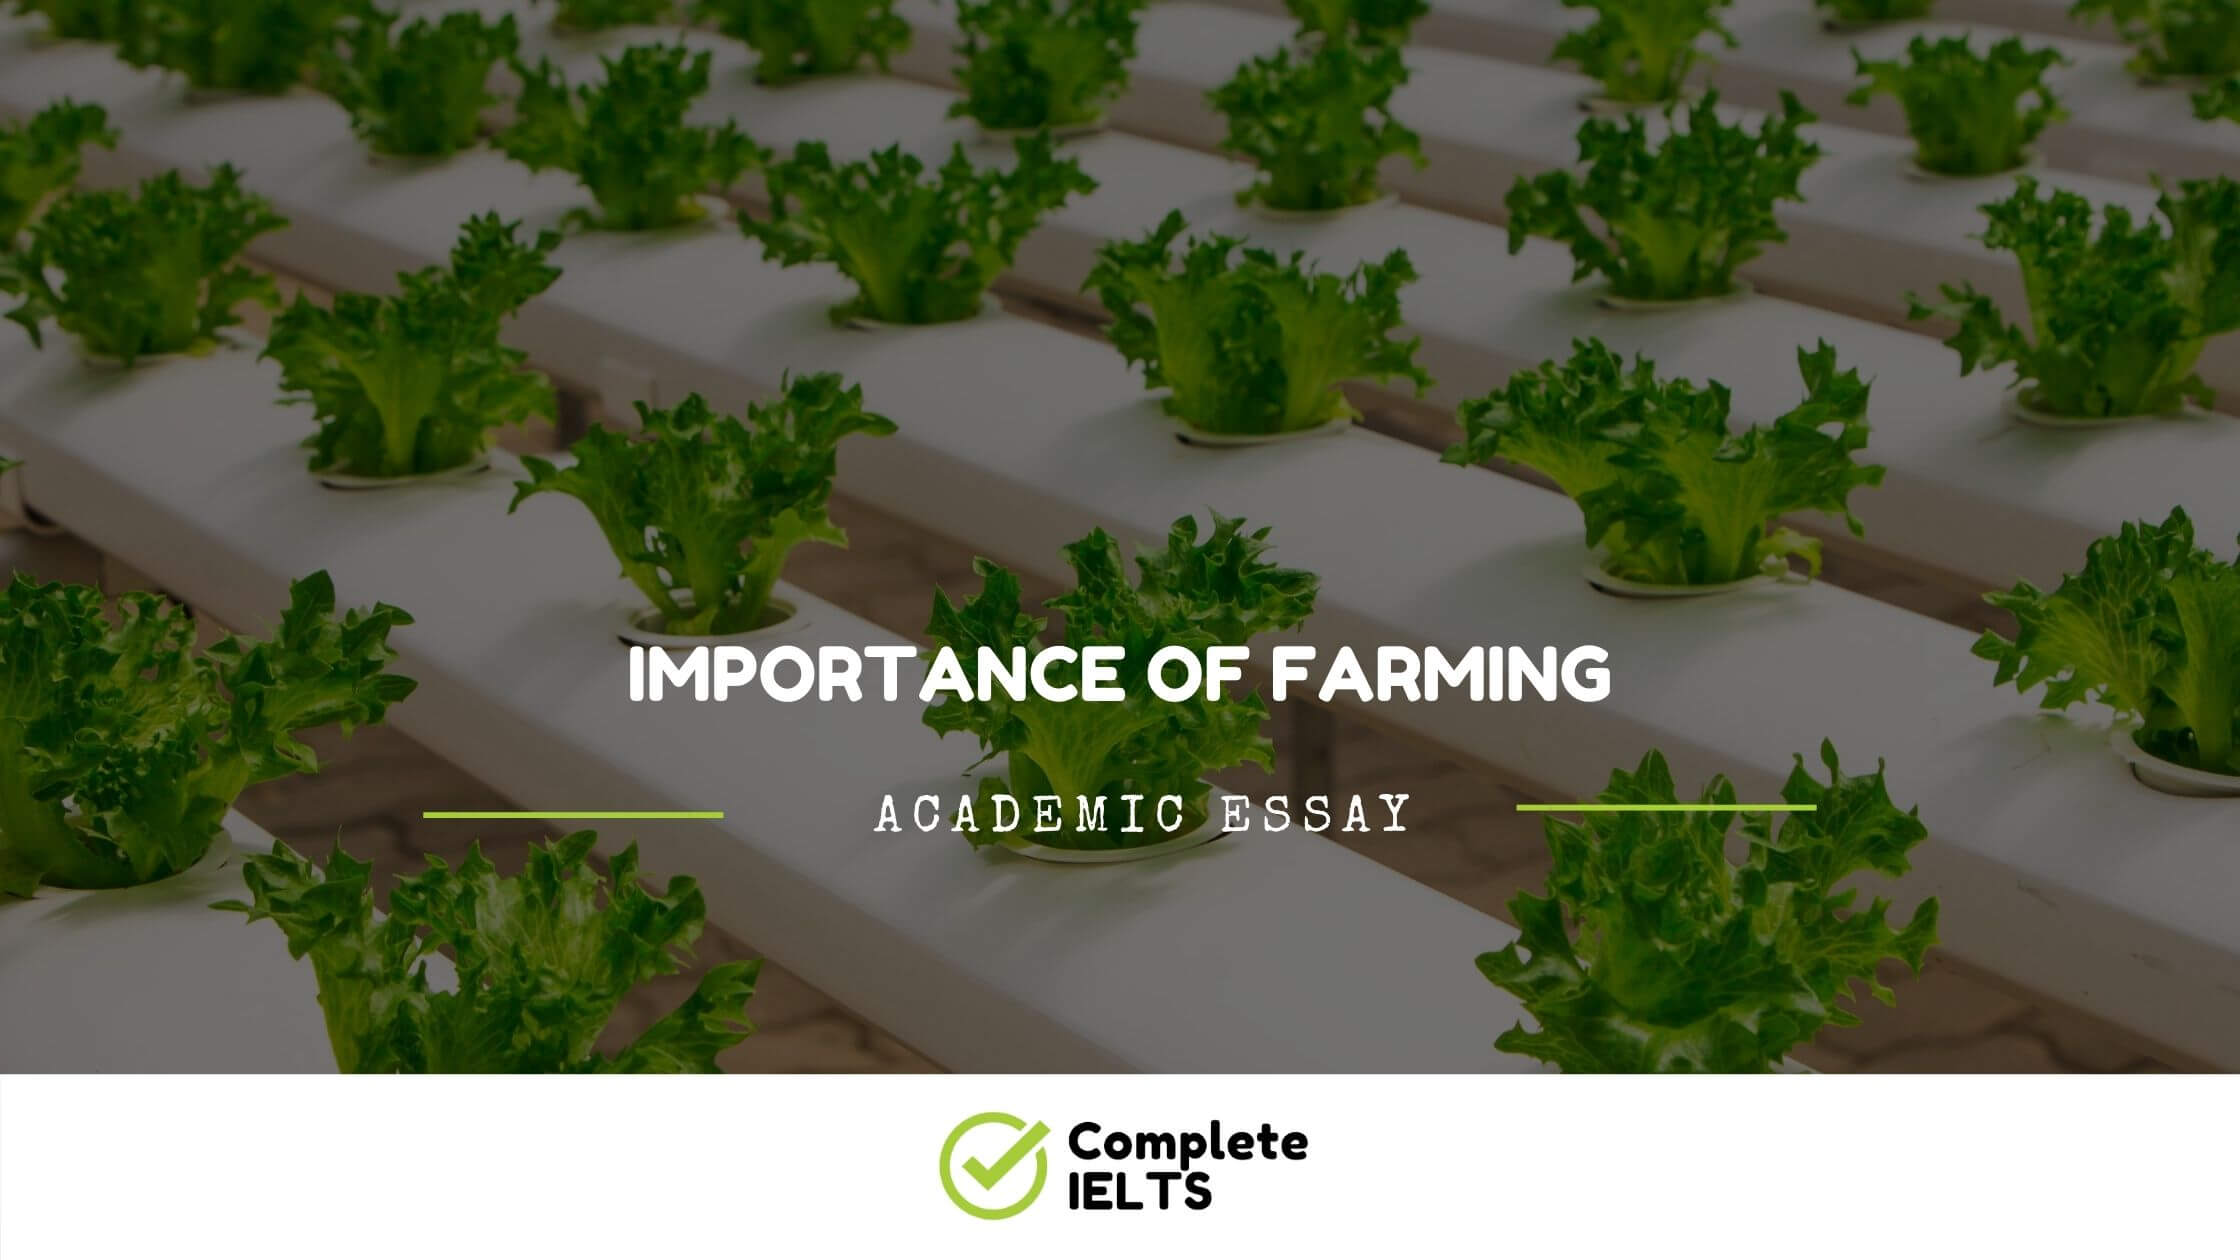 Essay on Importance of Farming